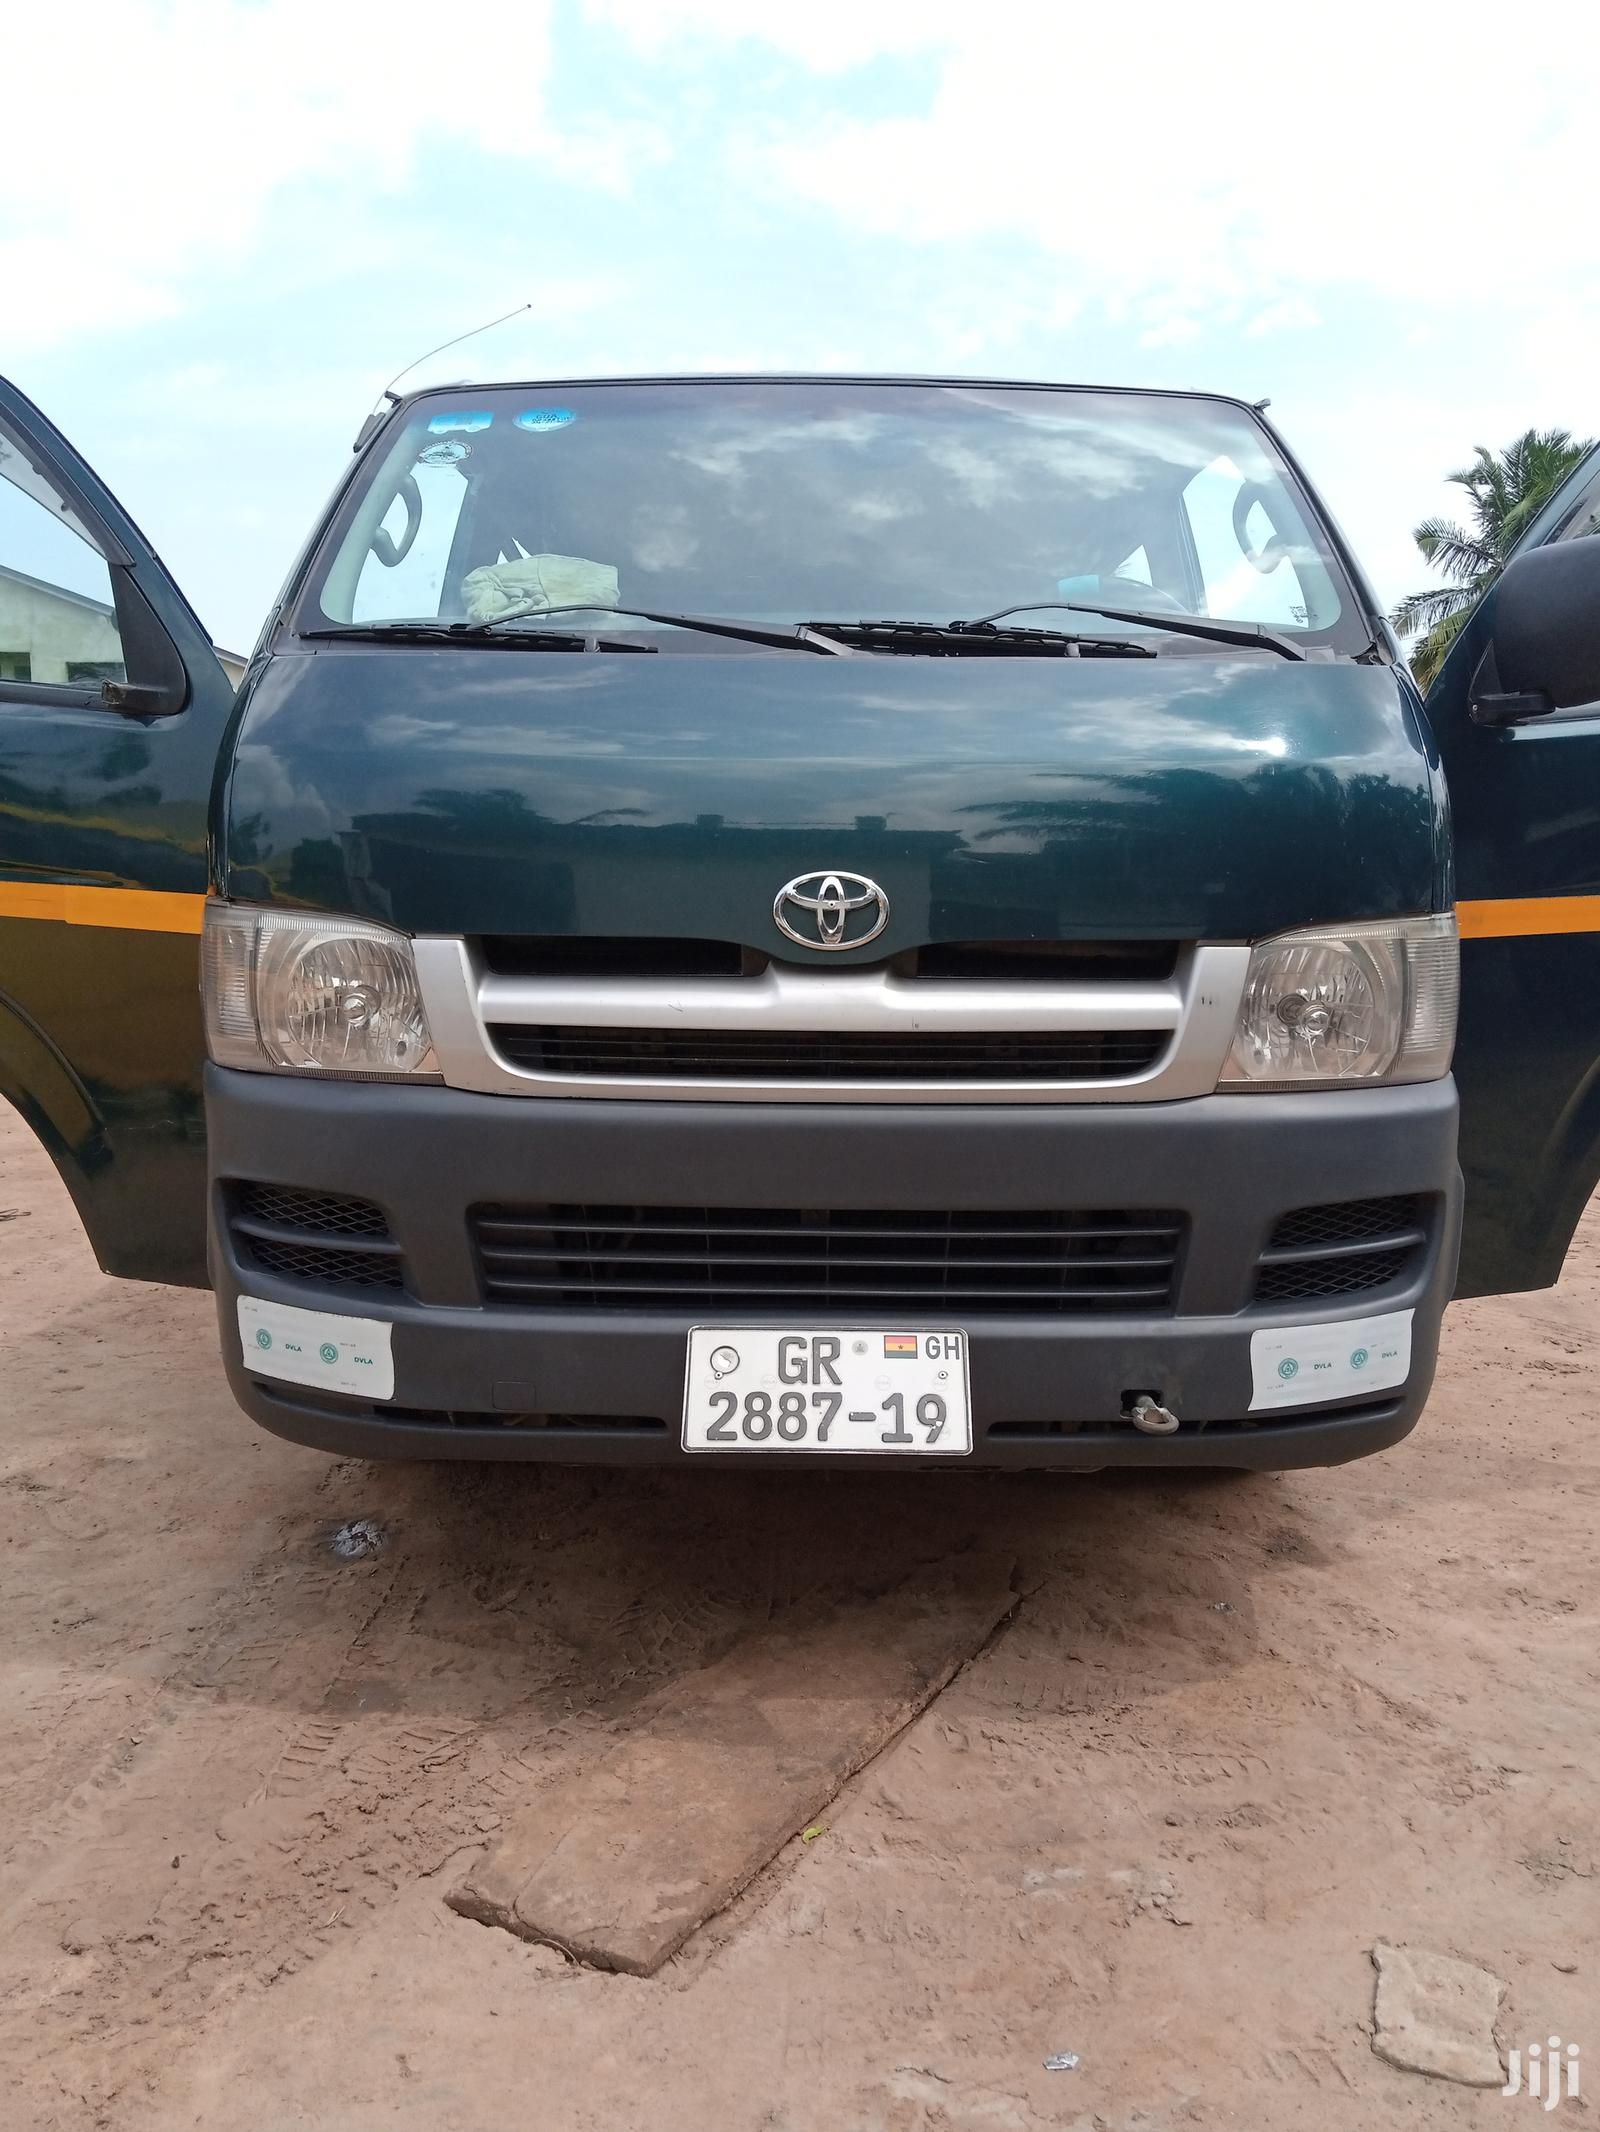 Archive: Toyota Hiace 2007 For Sale